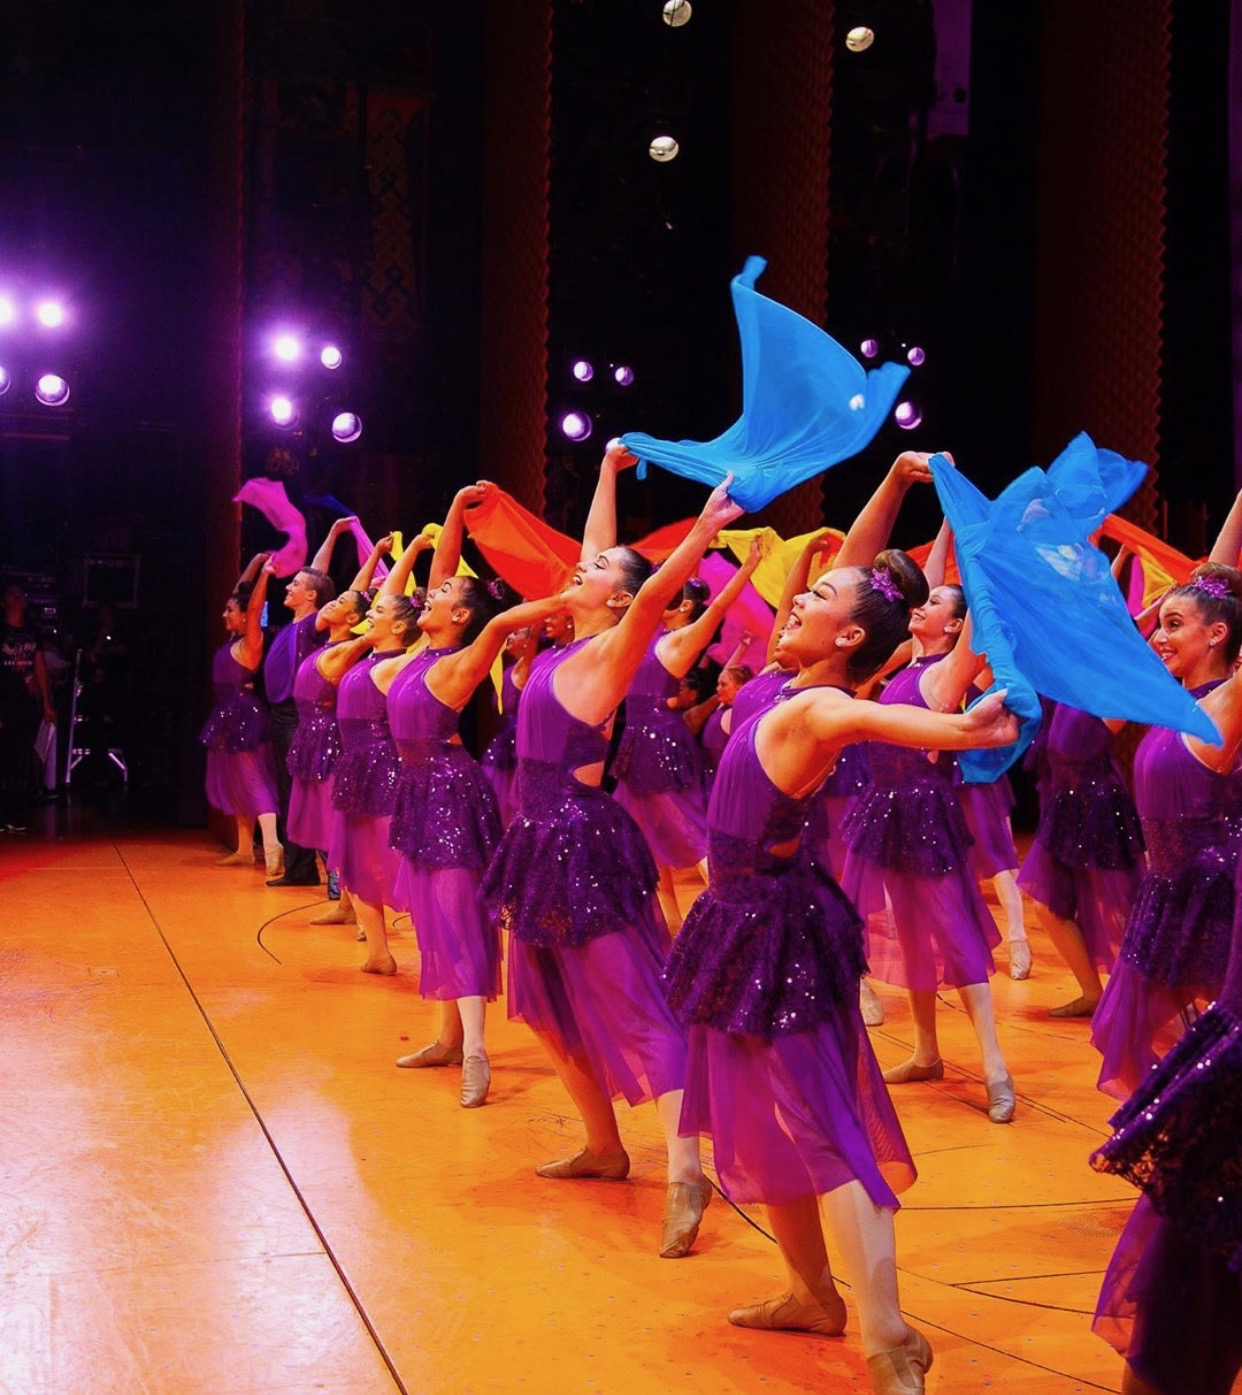 The SC Elite Dance Team performs their lyrical style dance to